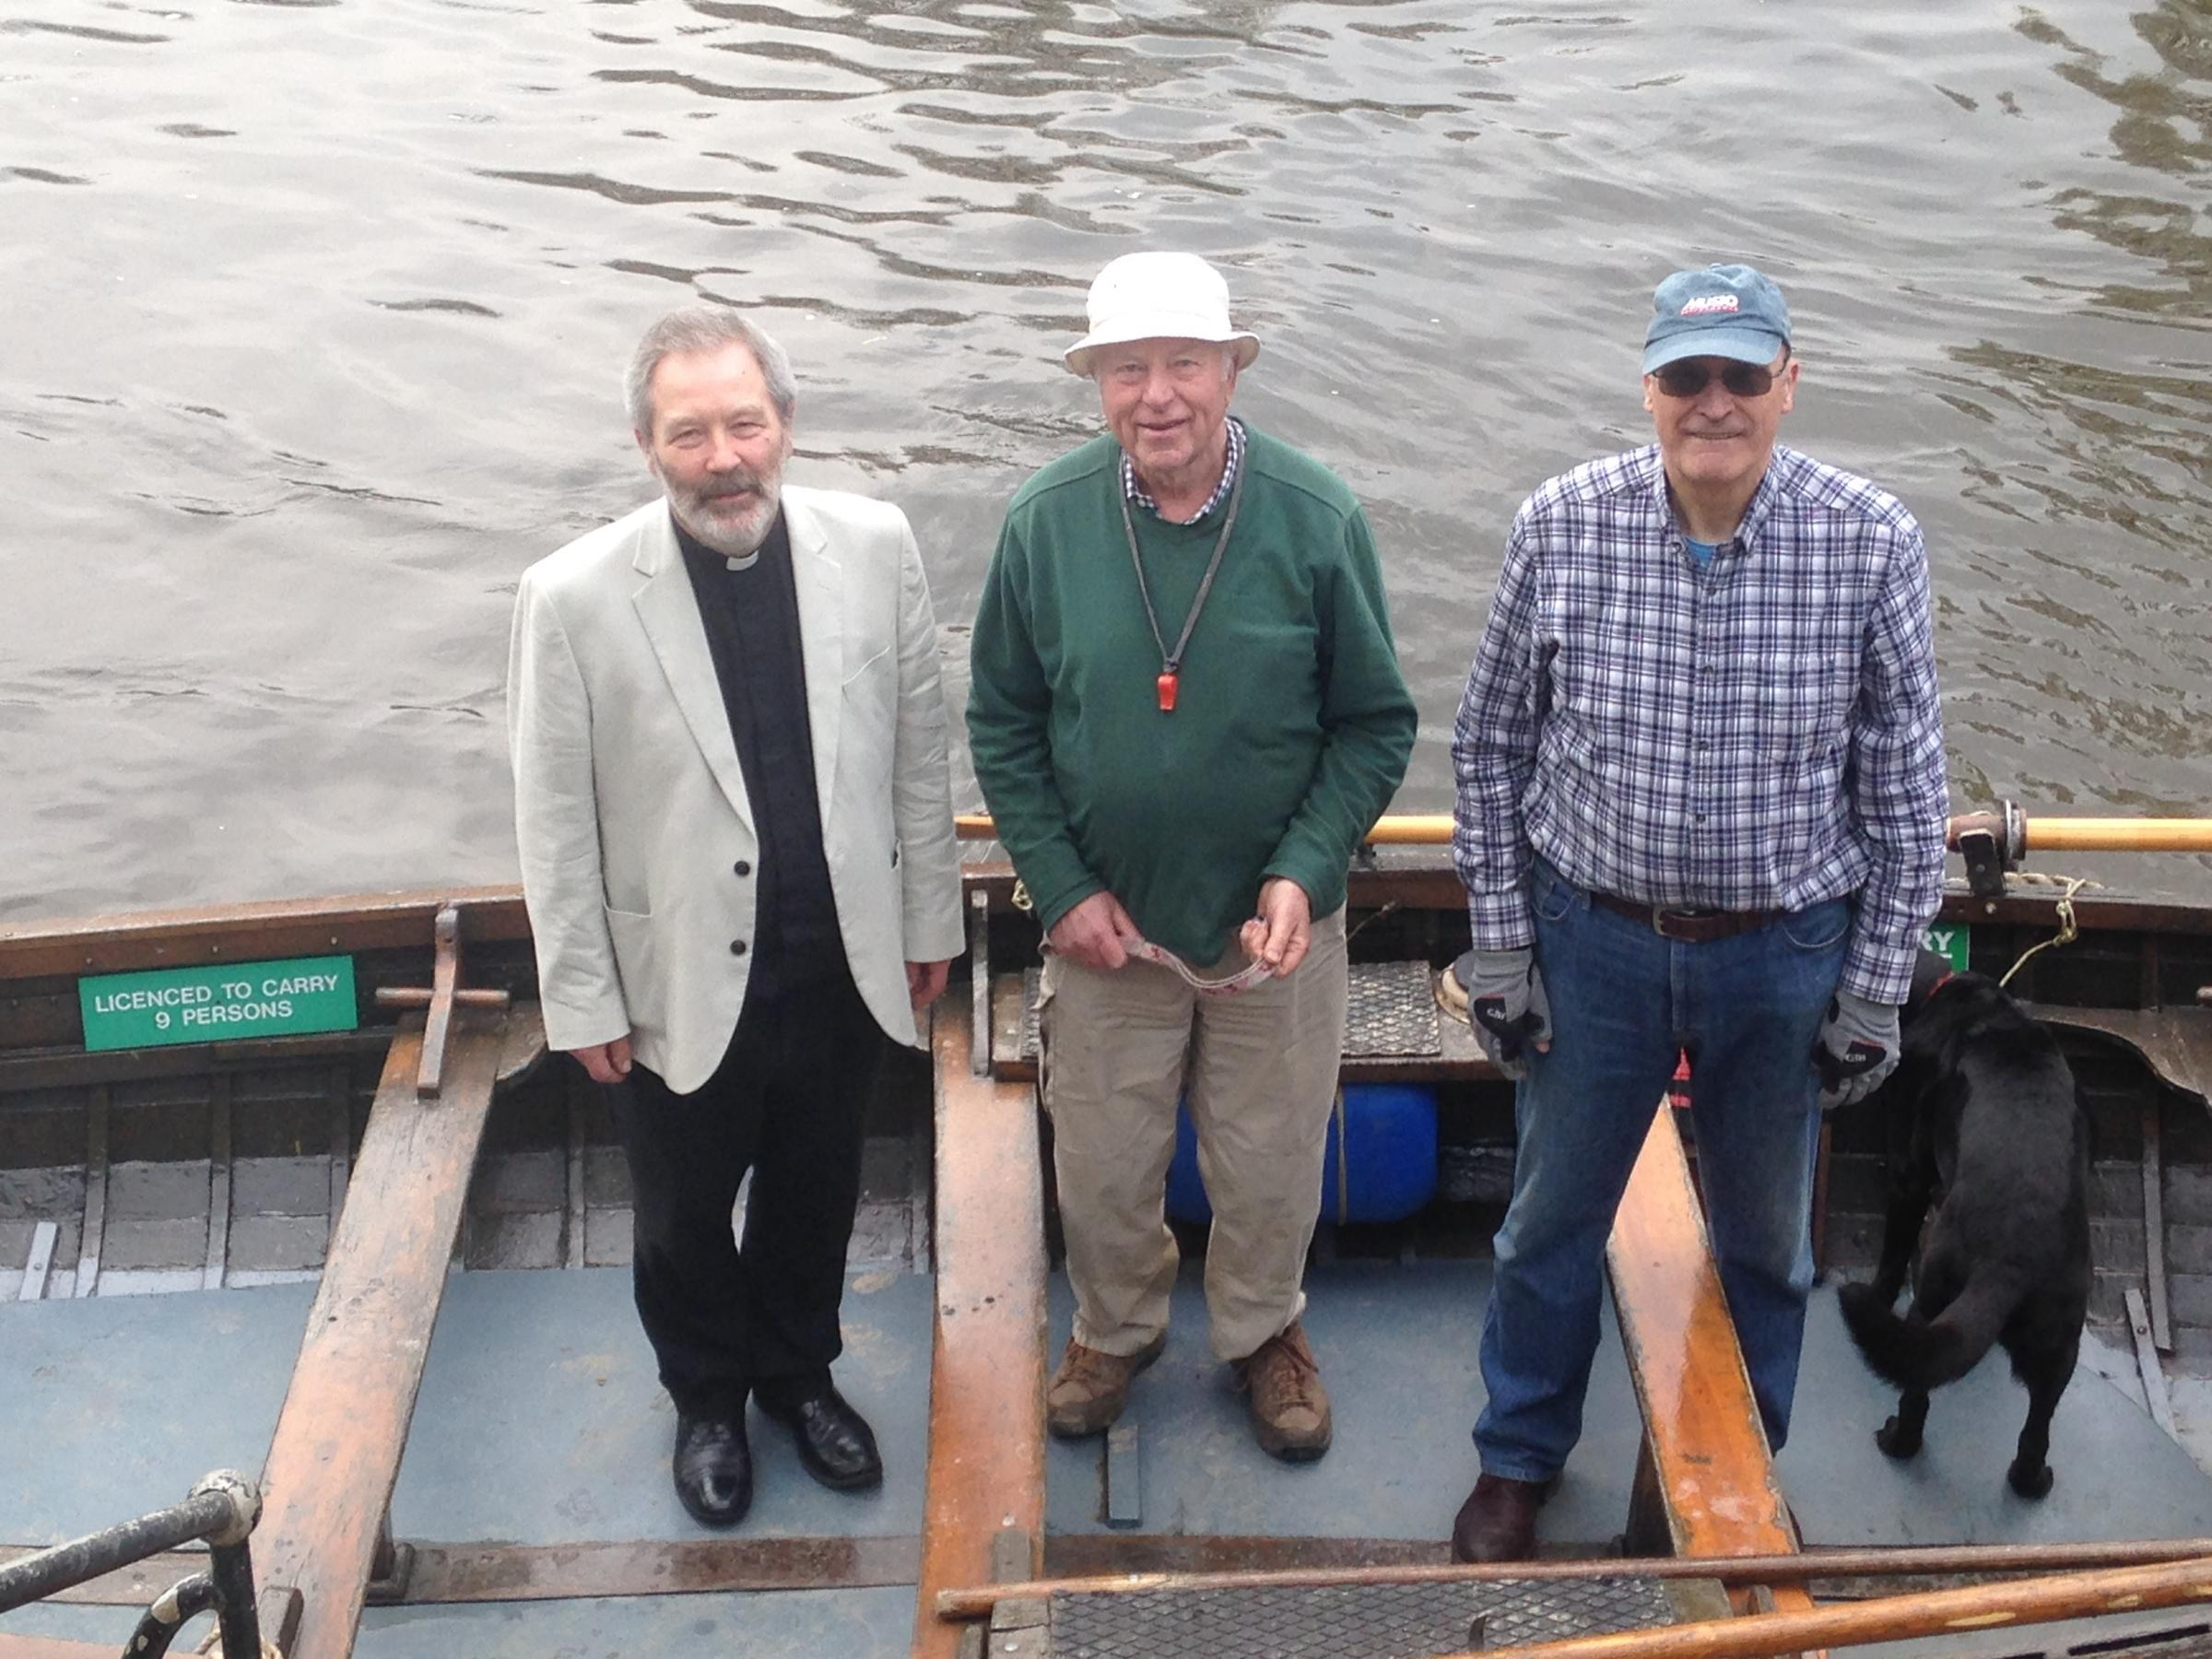 OPEN: The Cathedral Ferry re-opened for summer. From left to right: Revd Canon Alvyn Pettersen, Mark Glossop and Stephen Cope, ferryman for the day